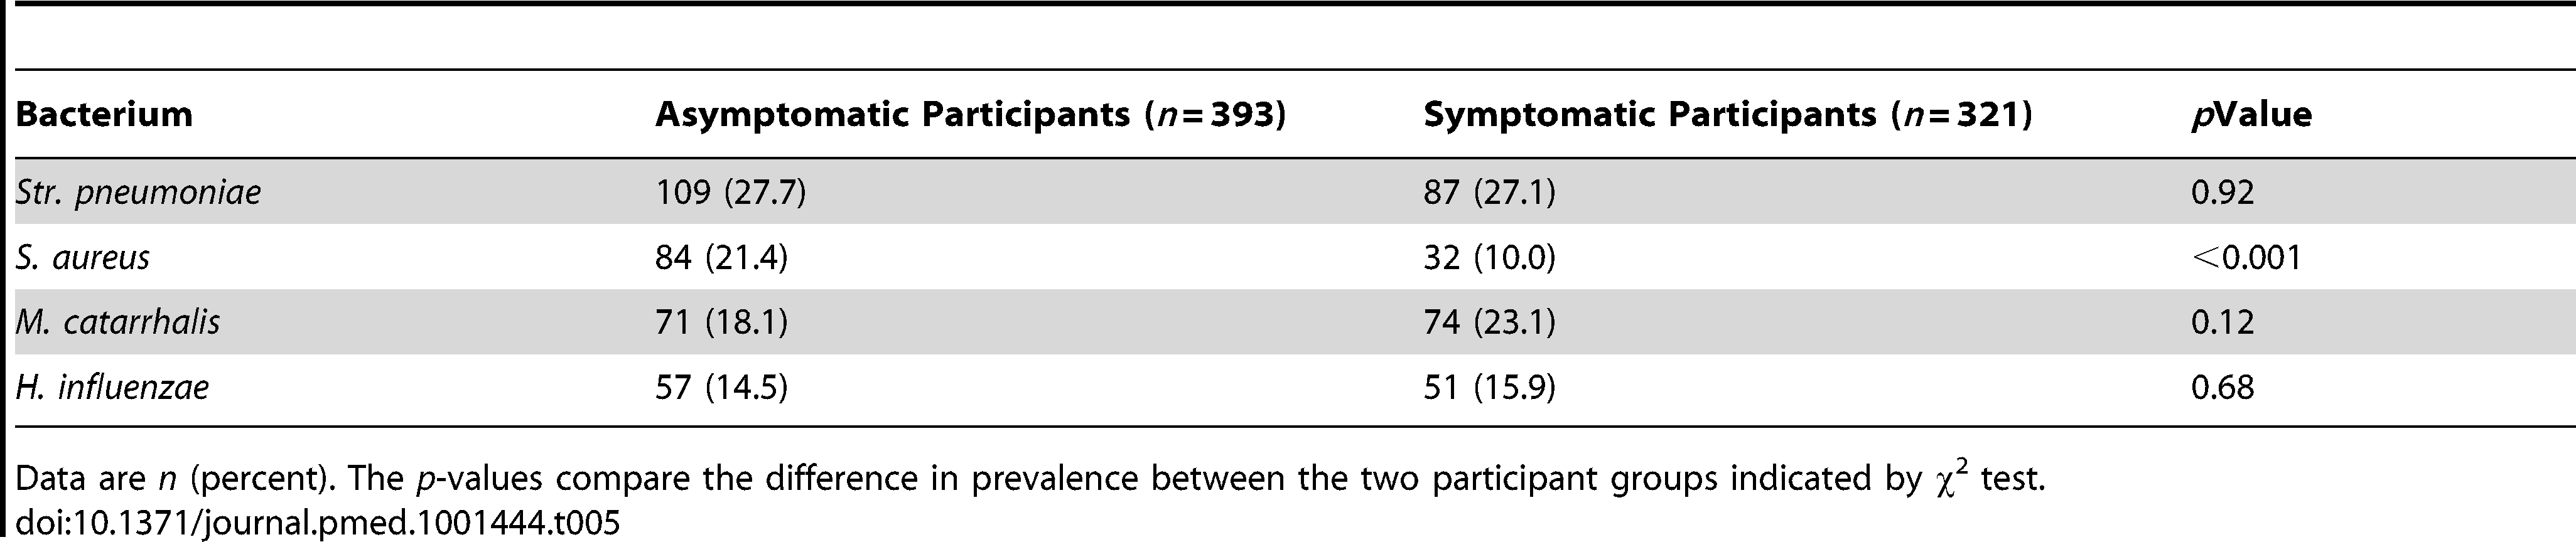 Bacterial results in 714 study participants.